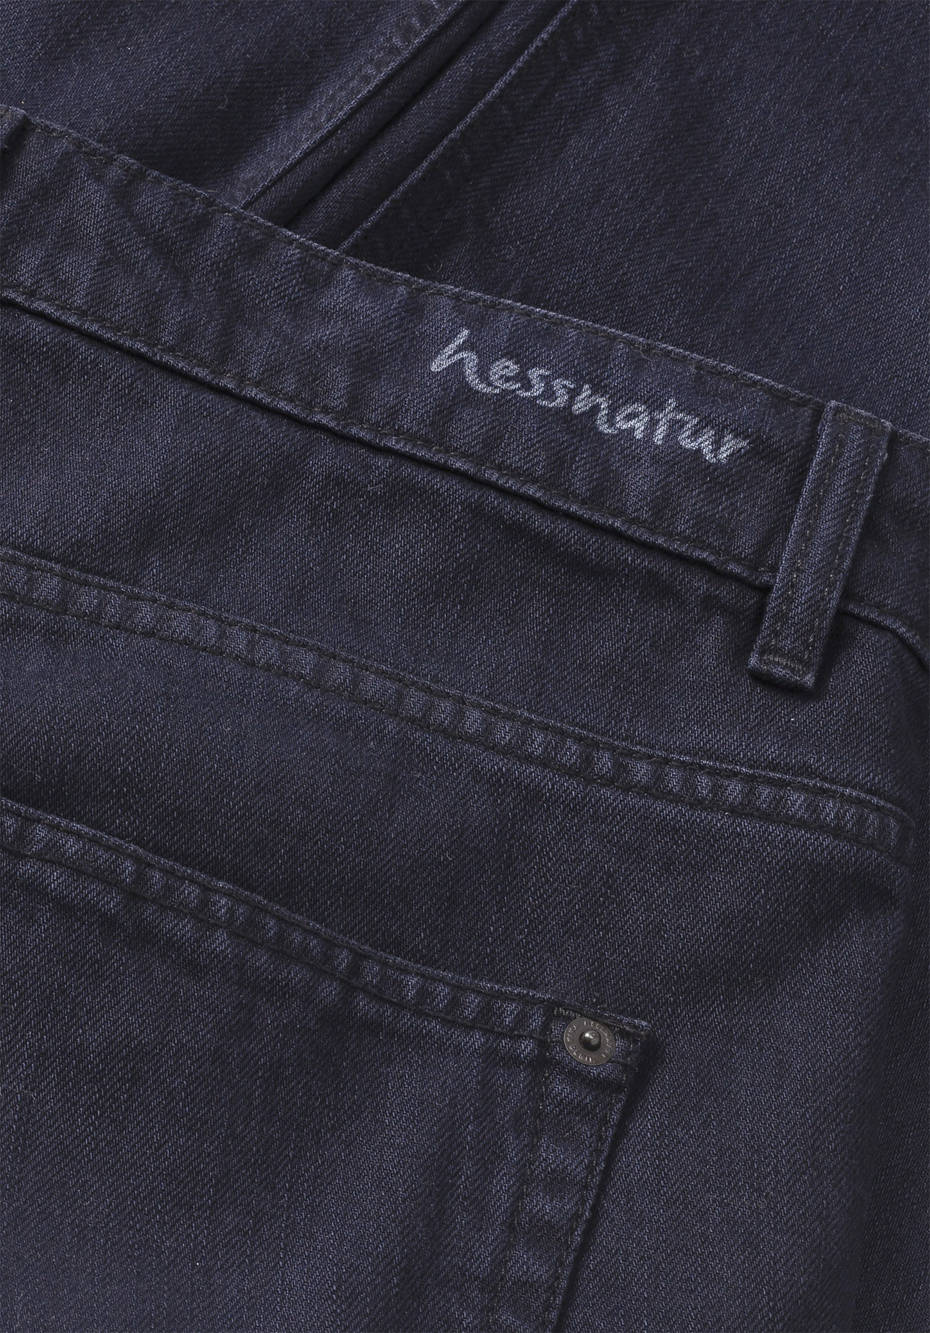 Over Dye Jeans Max Tapered Fit made of pure organic denim